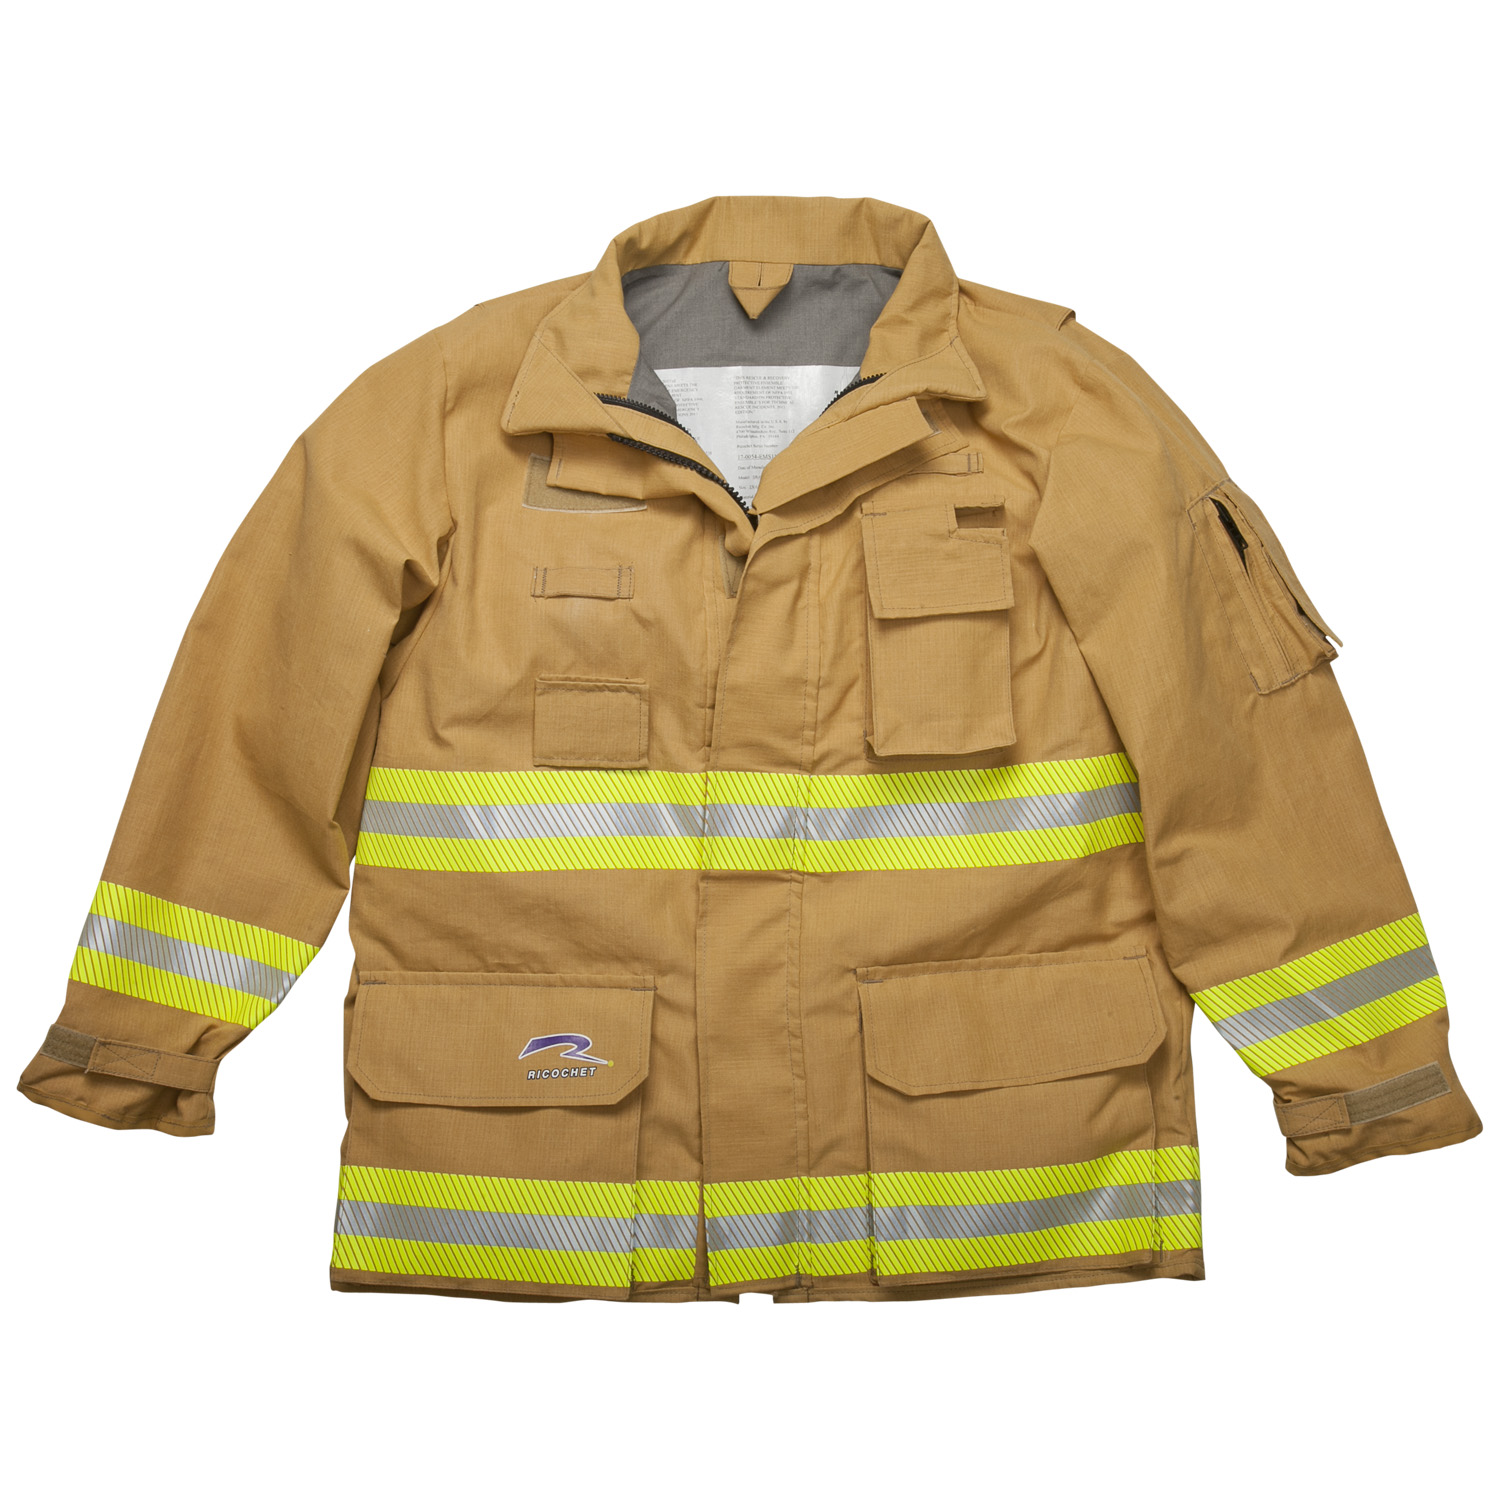 Ricochet Technical Rescue 600 Series Jacket Front